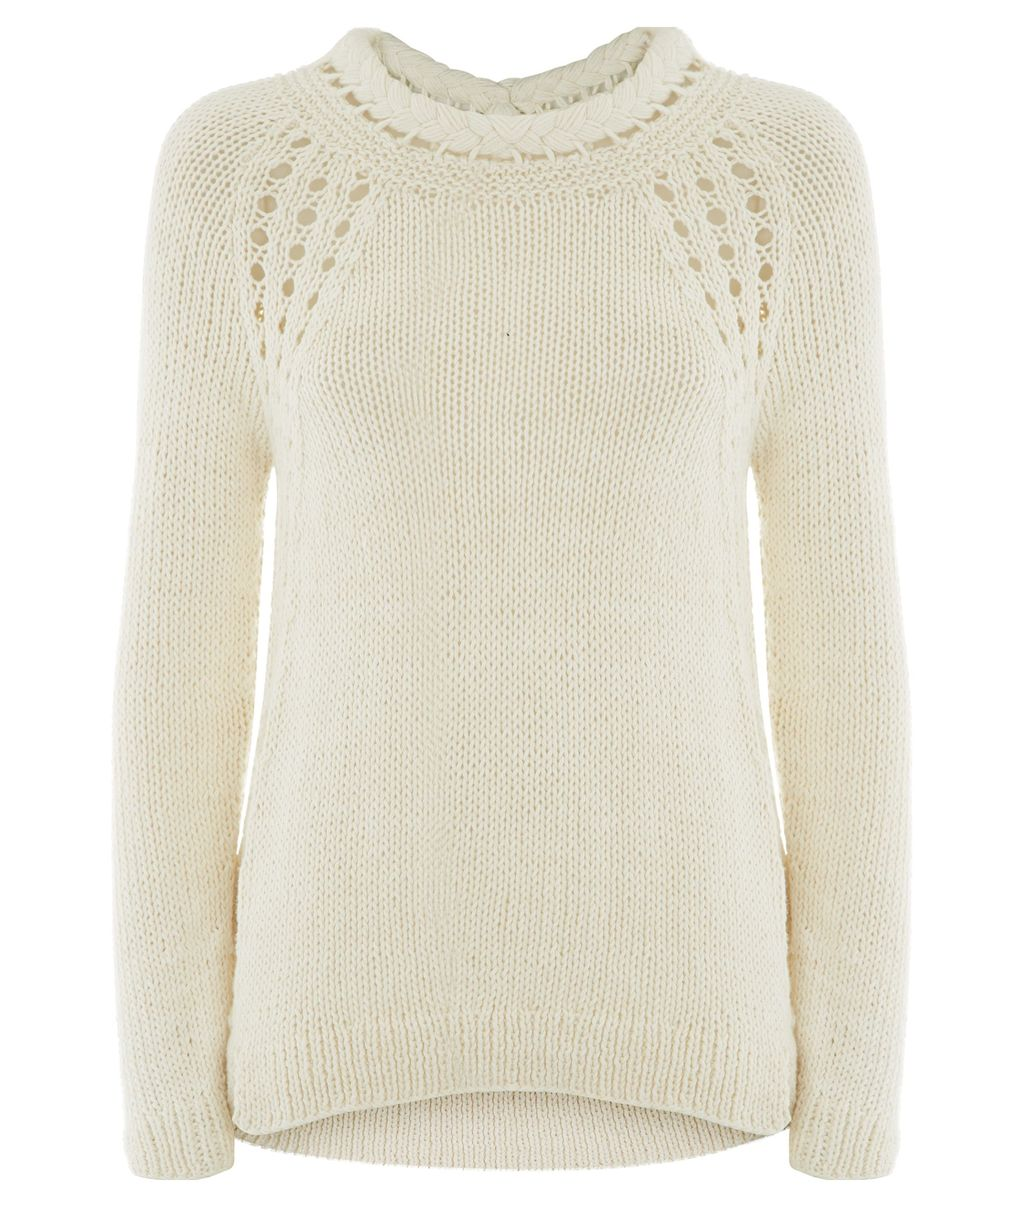 Cora Plaited Collar Jumper, Cream - pattern: plain; style: standard; predominant colour: ivory/cream; occasions: casual, evening, creative work; length: standard; fibres: cotton - 100%; fit: standard fit; neckline: crew; back detail: longer hem at back than at front; sleeve length: long sleeve; sleeve style: standard; texture group: knits/crochet; pattern type: knitted - fine stitch; season: s/s 2015; wardrobe: basic